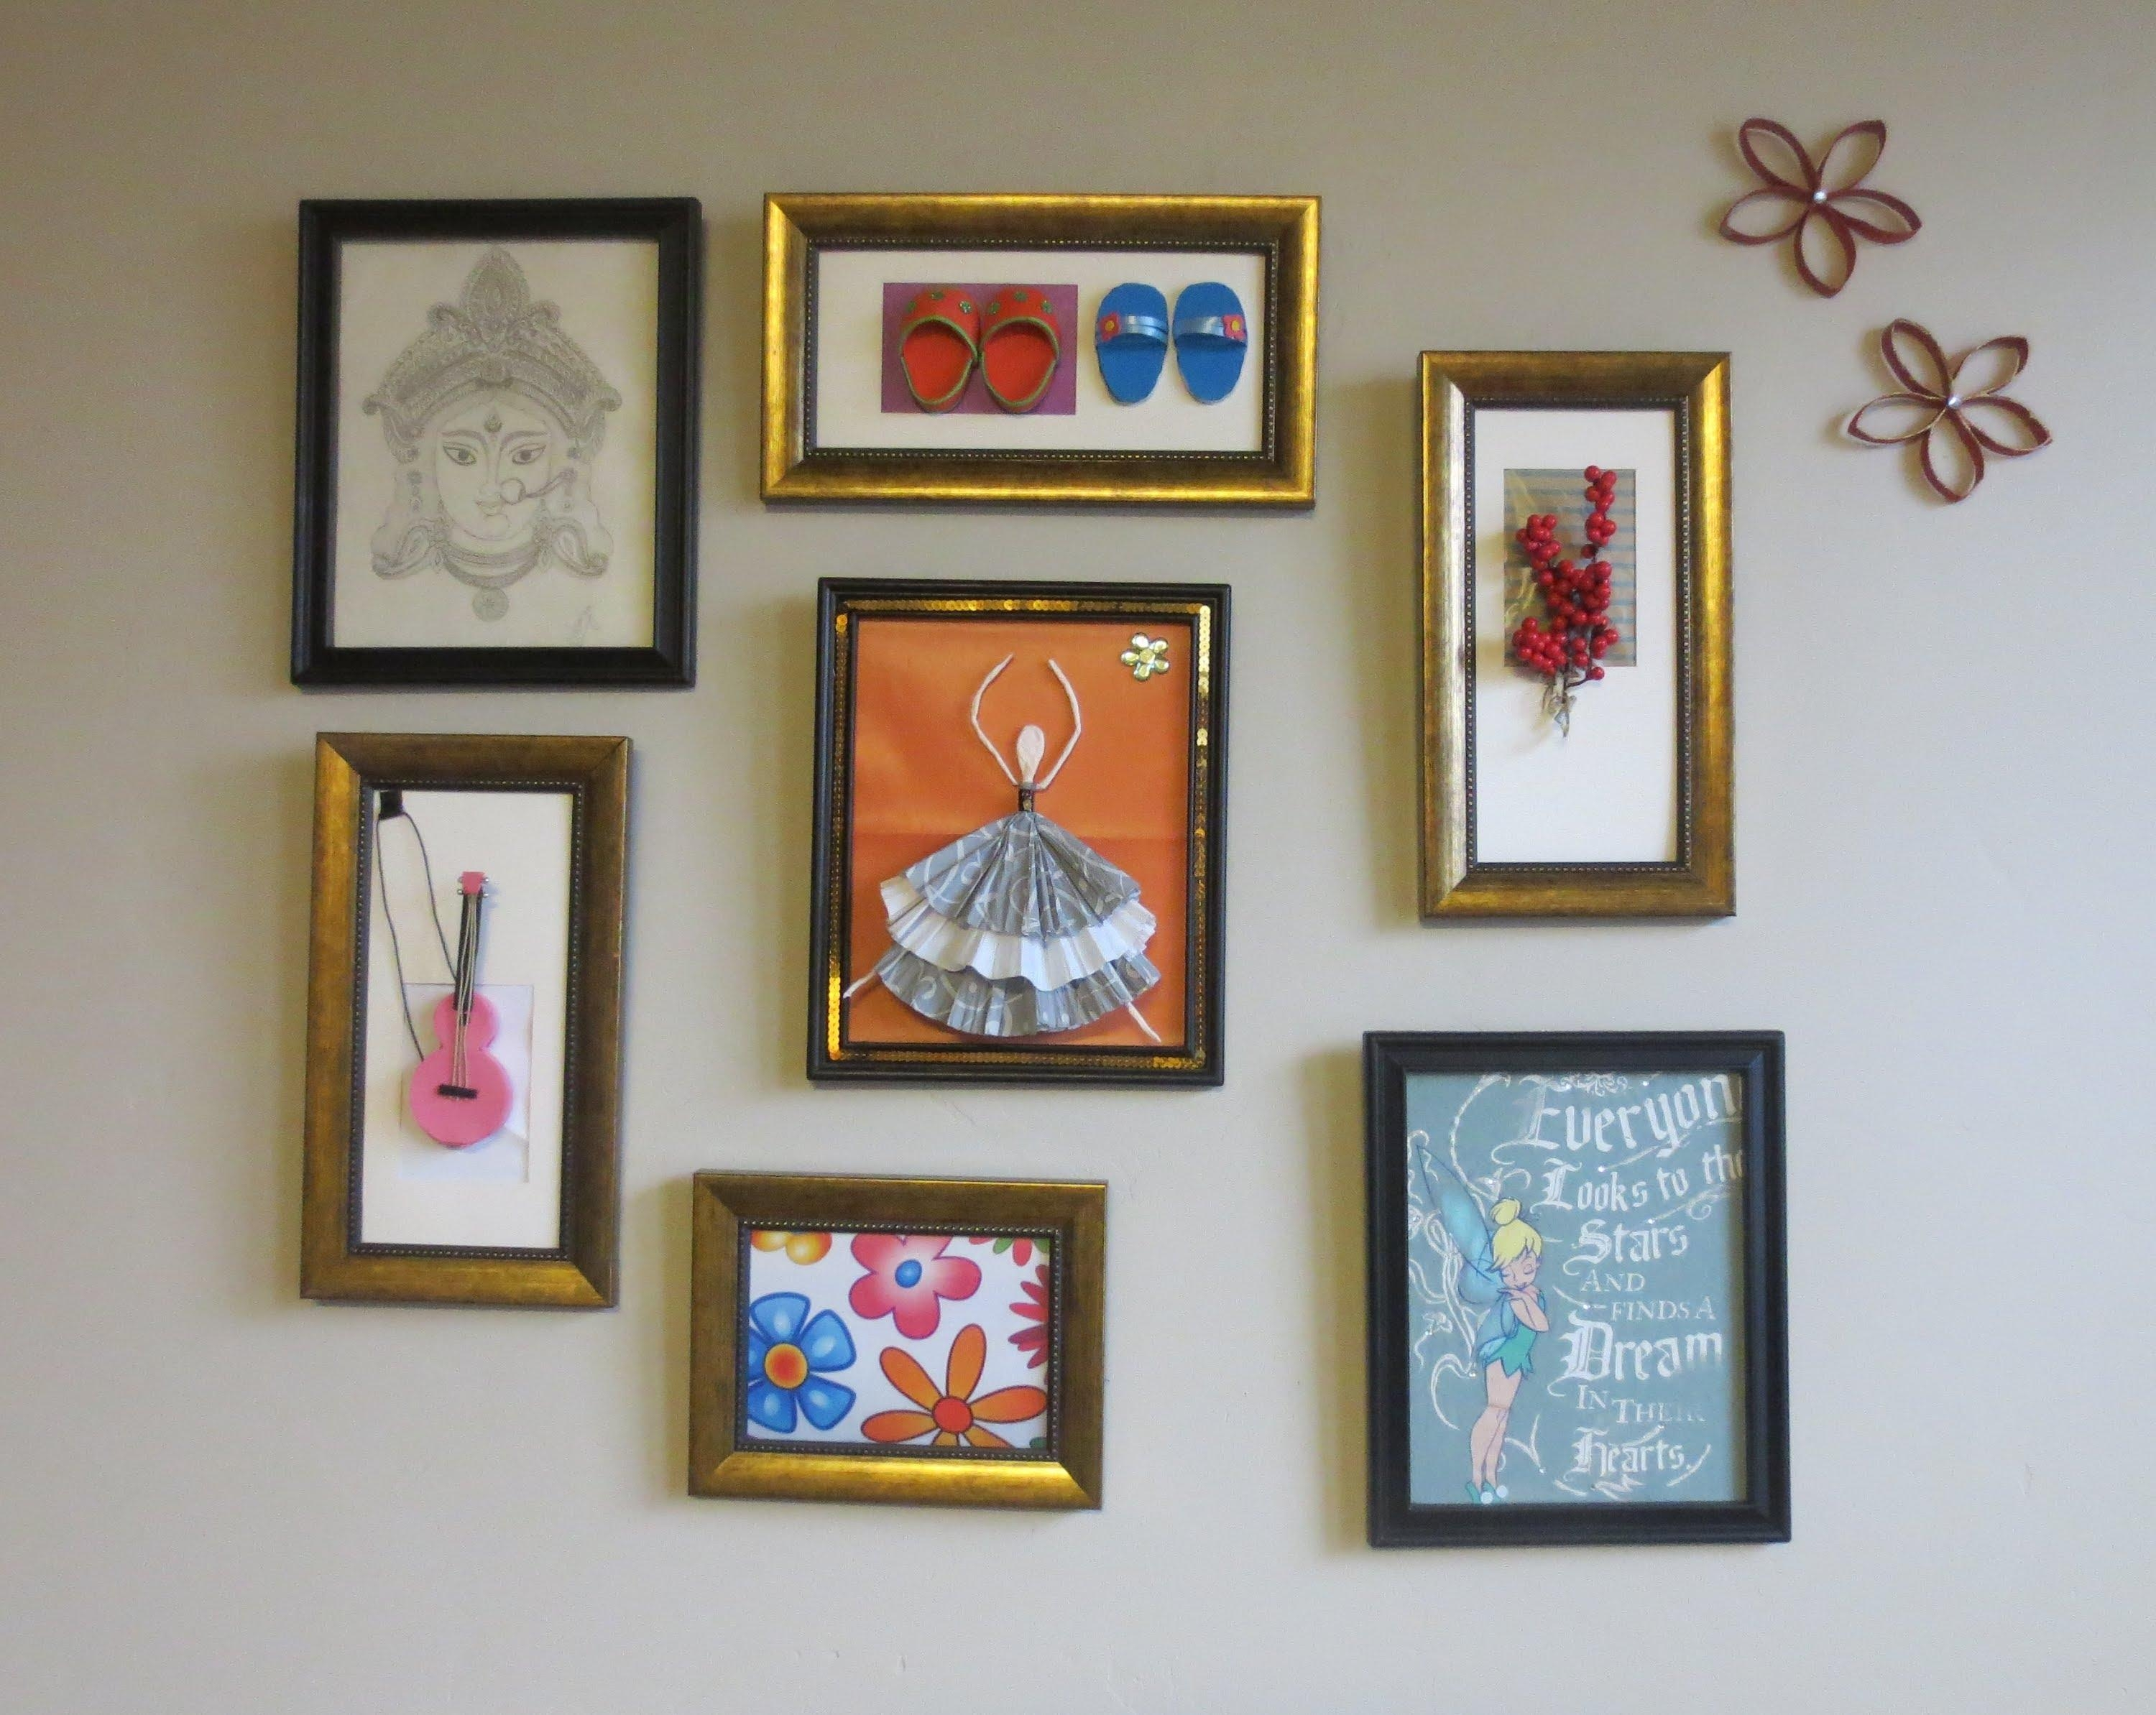 Home Decor : Tshirt Graphic & 3D Wall Art Picture Frame Collage Intended For Wall Art Frames (Image 13 of 20)